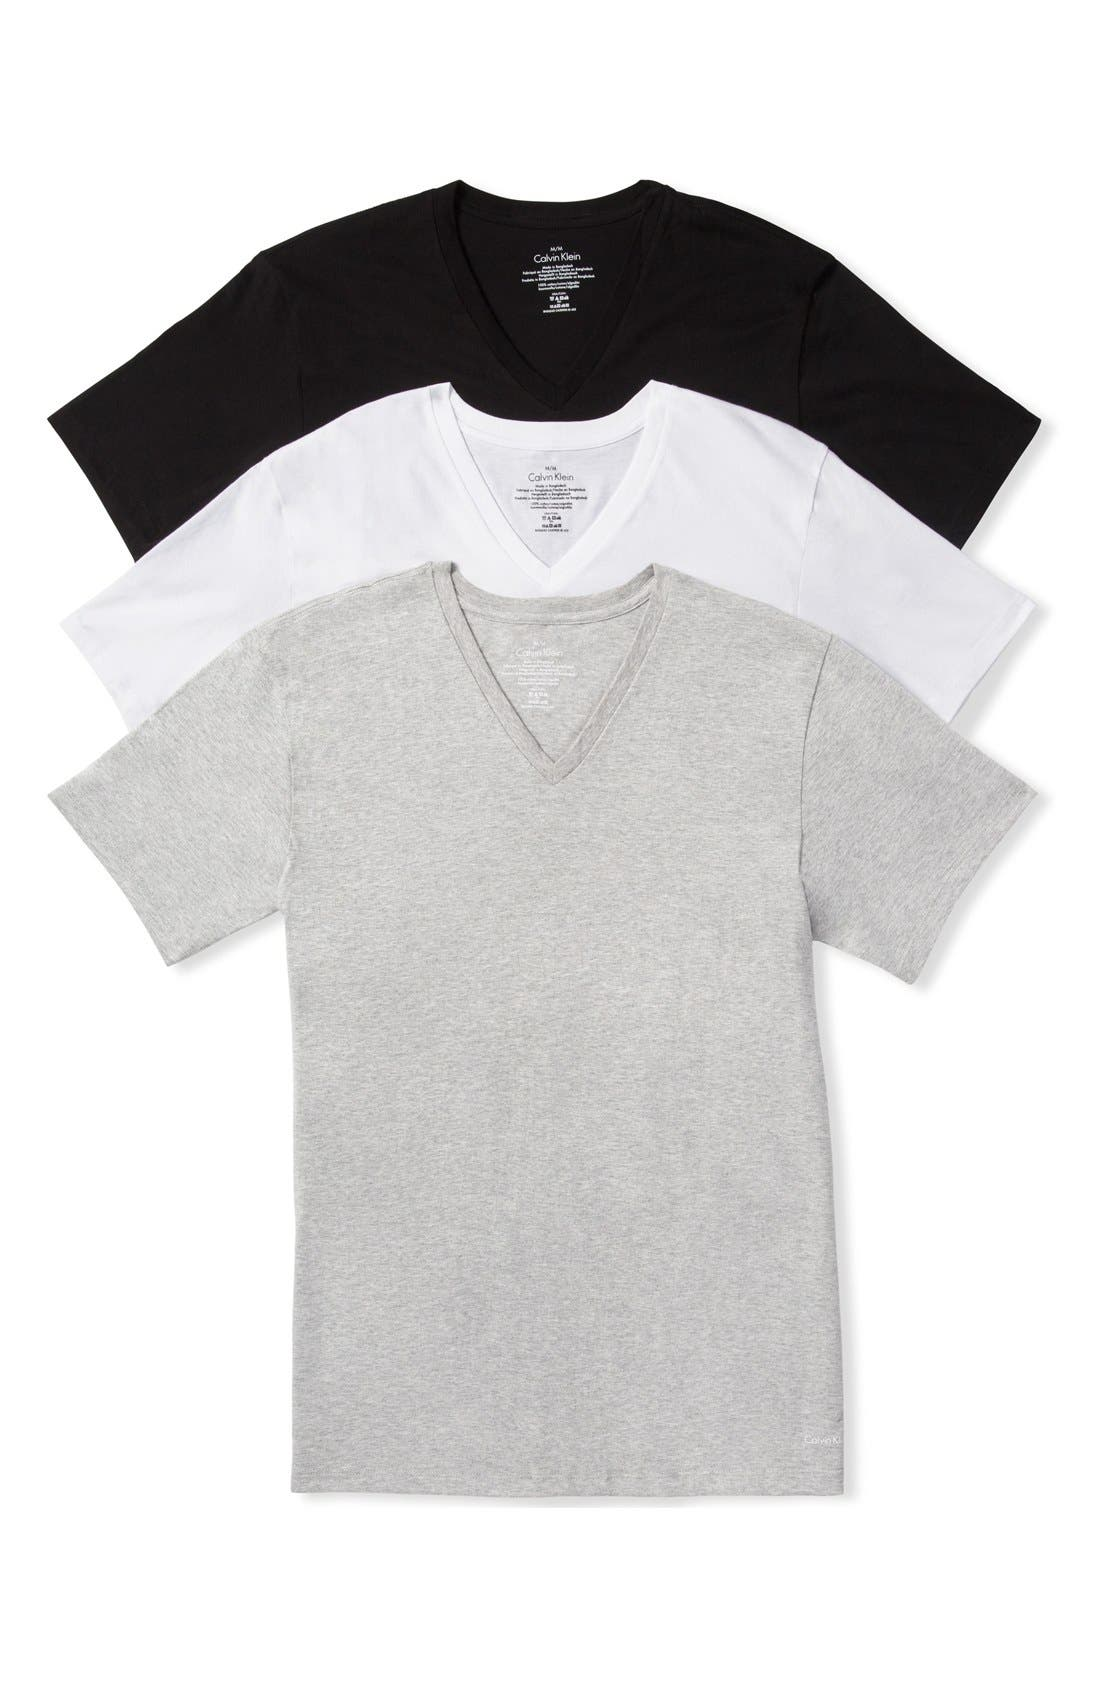 Main Image - Calvin Klein Assorted 3-Pack Classic Fit Cotton V-Neck T-Shirt